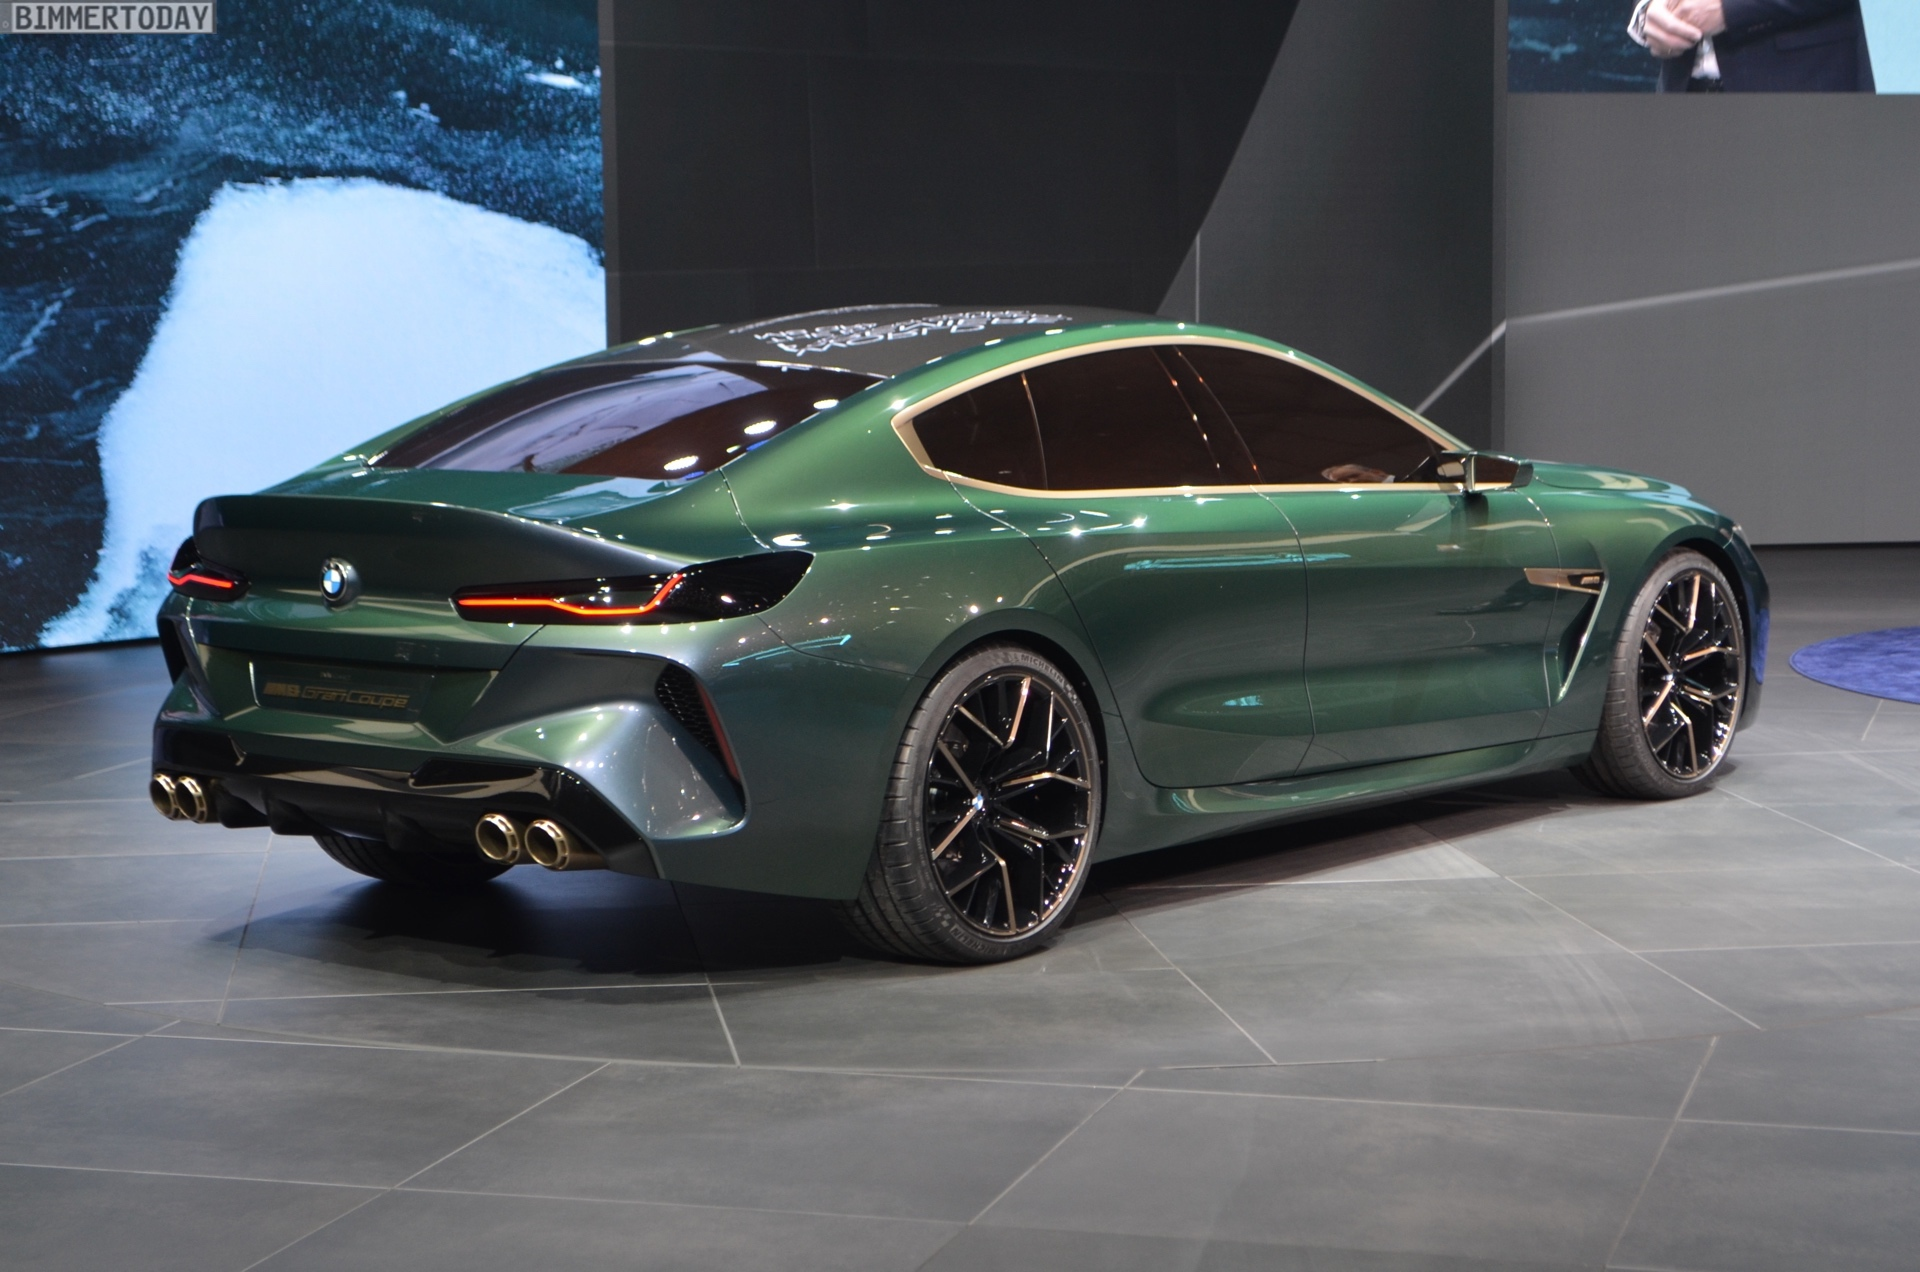 hight resolution of genf 2018 bmw m8 gran coupe concept live 16 830x550